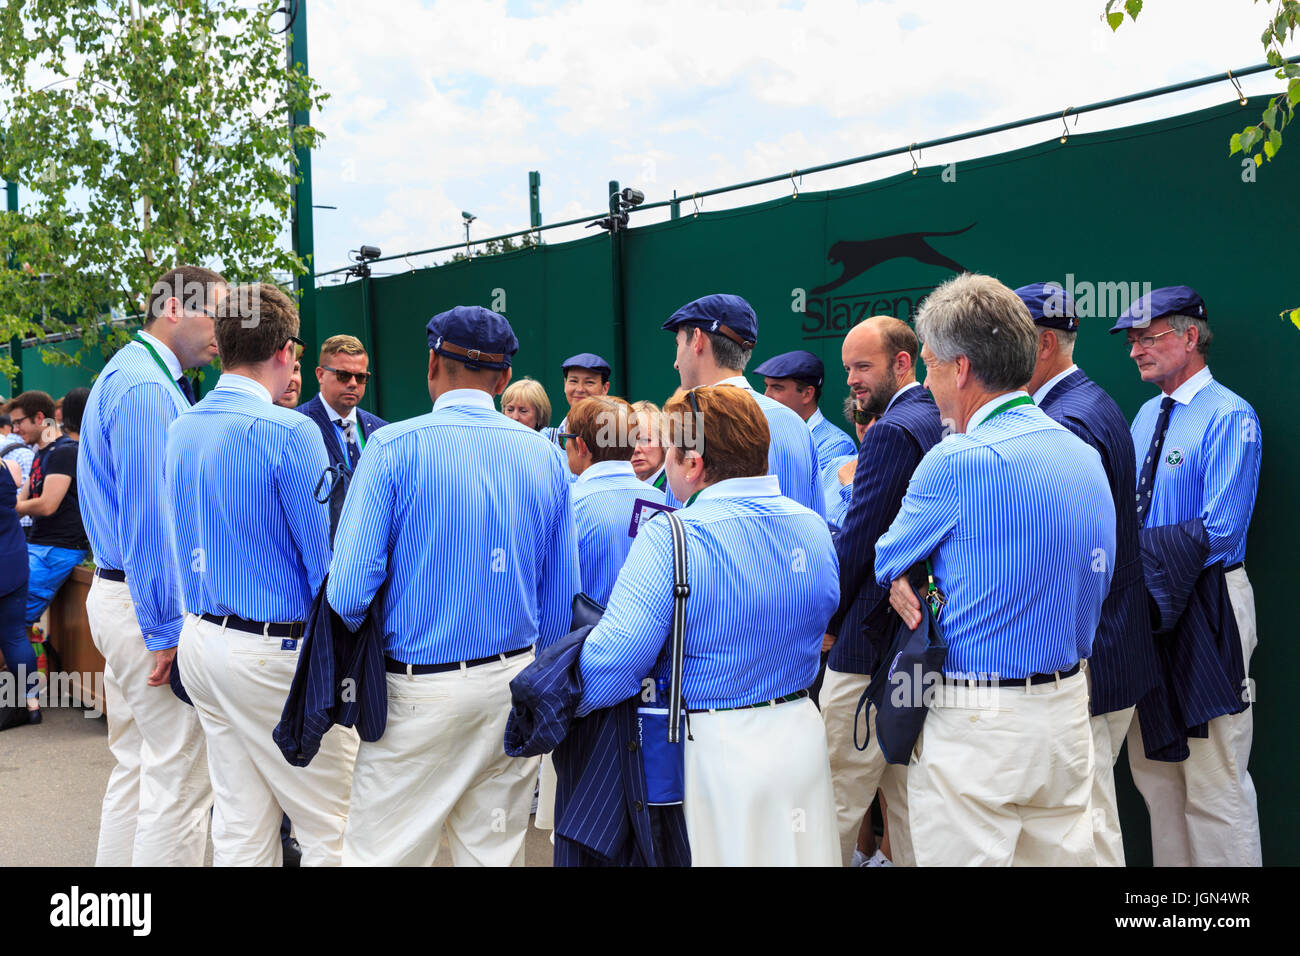 Wimbledon line umpires during a morning briefing at the Wimbledon Tennis Championships 2017, All England Lawn Tennis - Stock Image